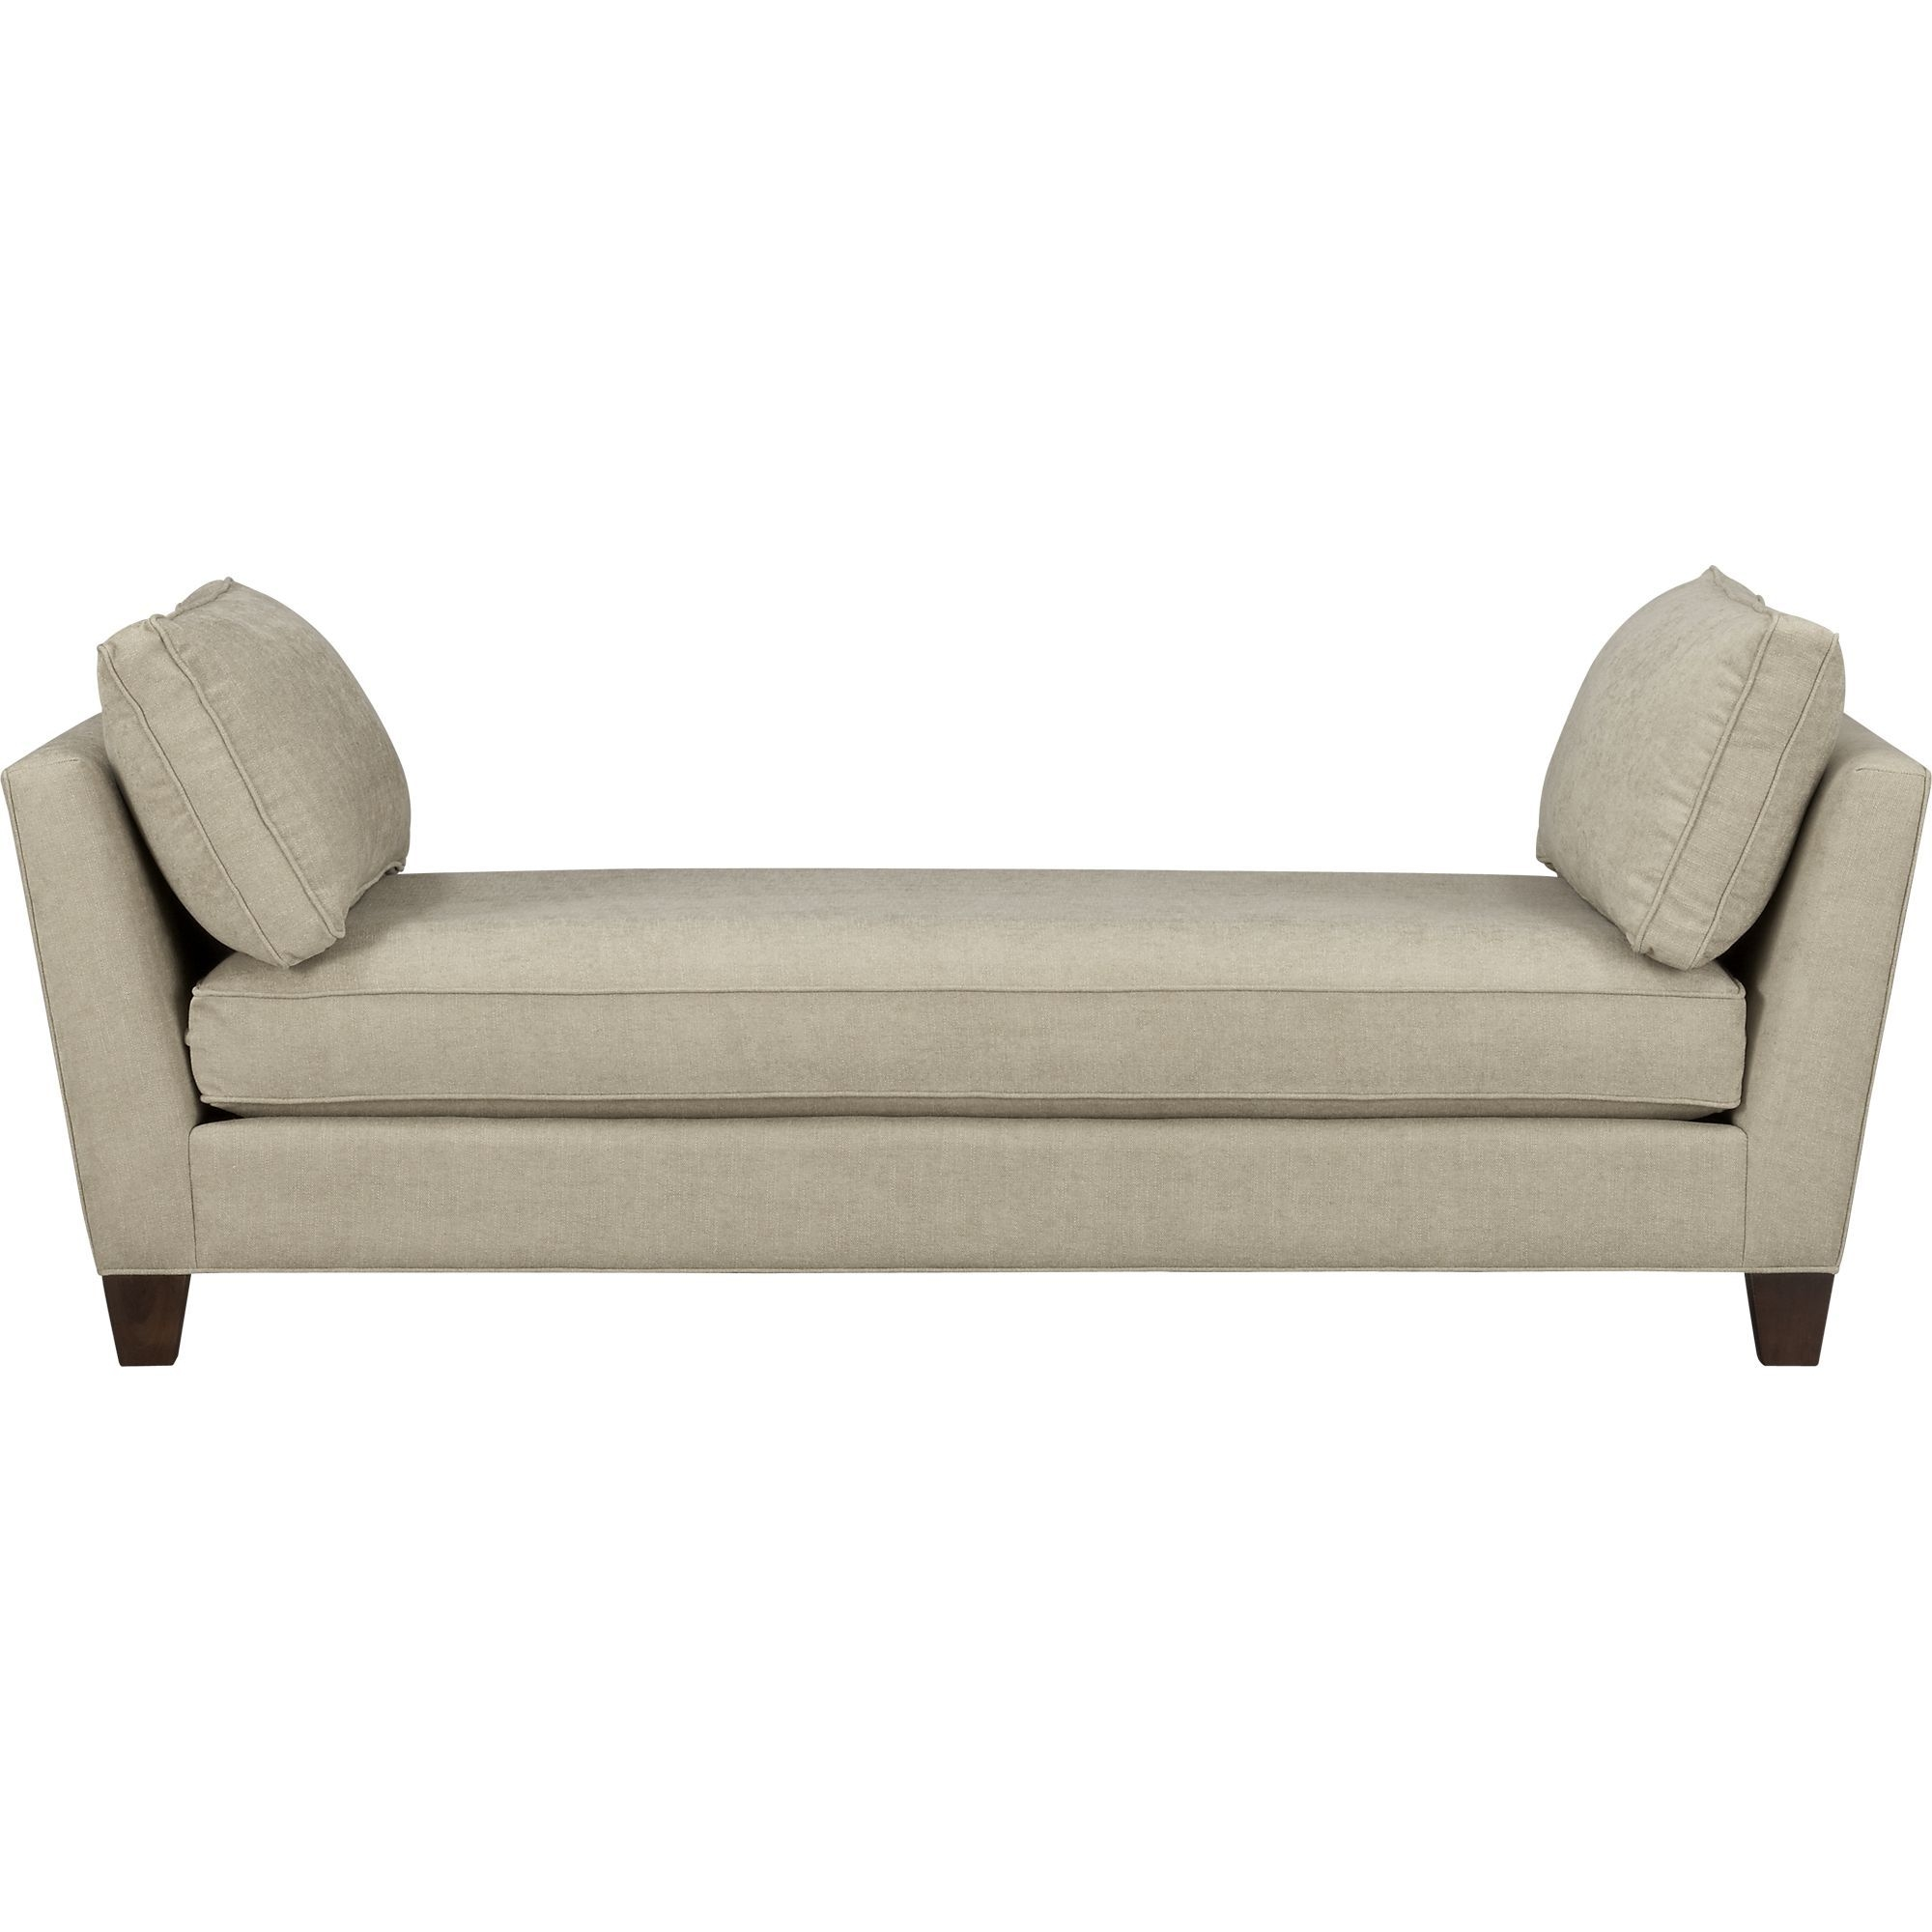 Exceptionnel Backless Sofa Daybed